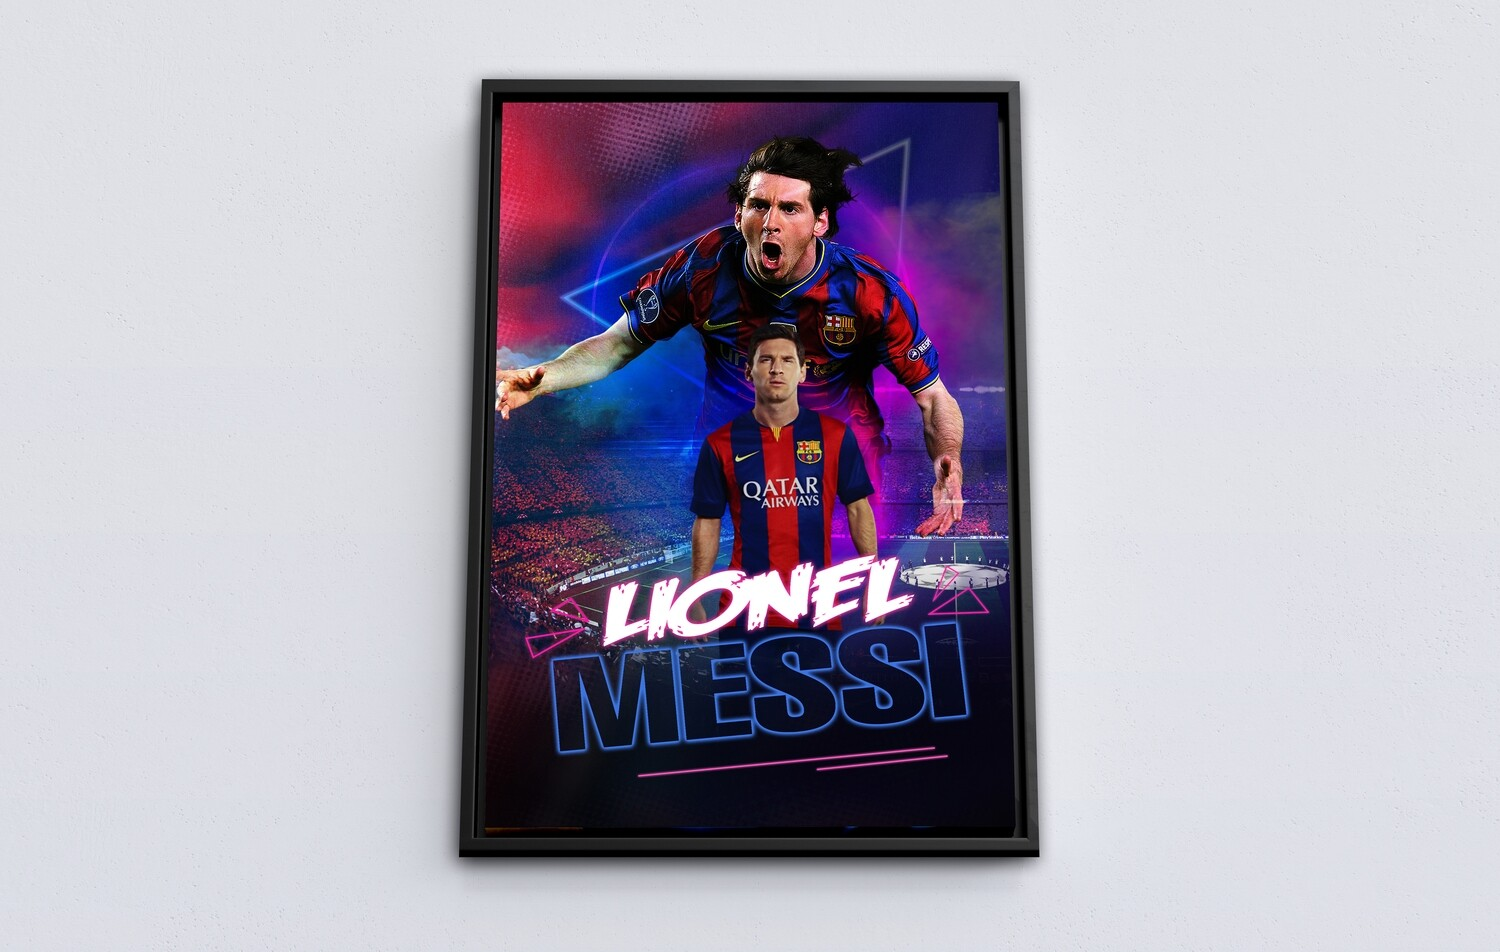 Lionel Messi Painting-Framed Sport Wallart - FC Barcelona Lionel Messi Picture Printed on Acrylic Glass - Framed and Ready To Hang